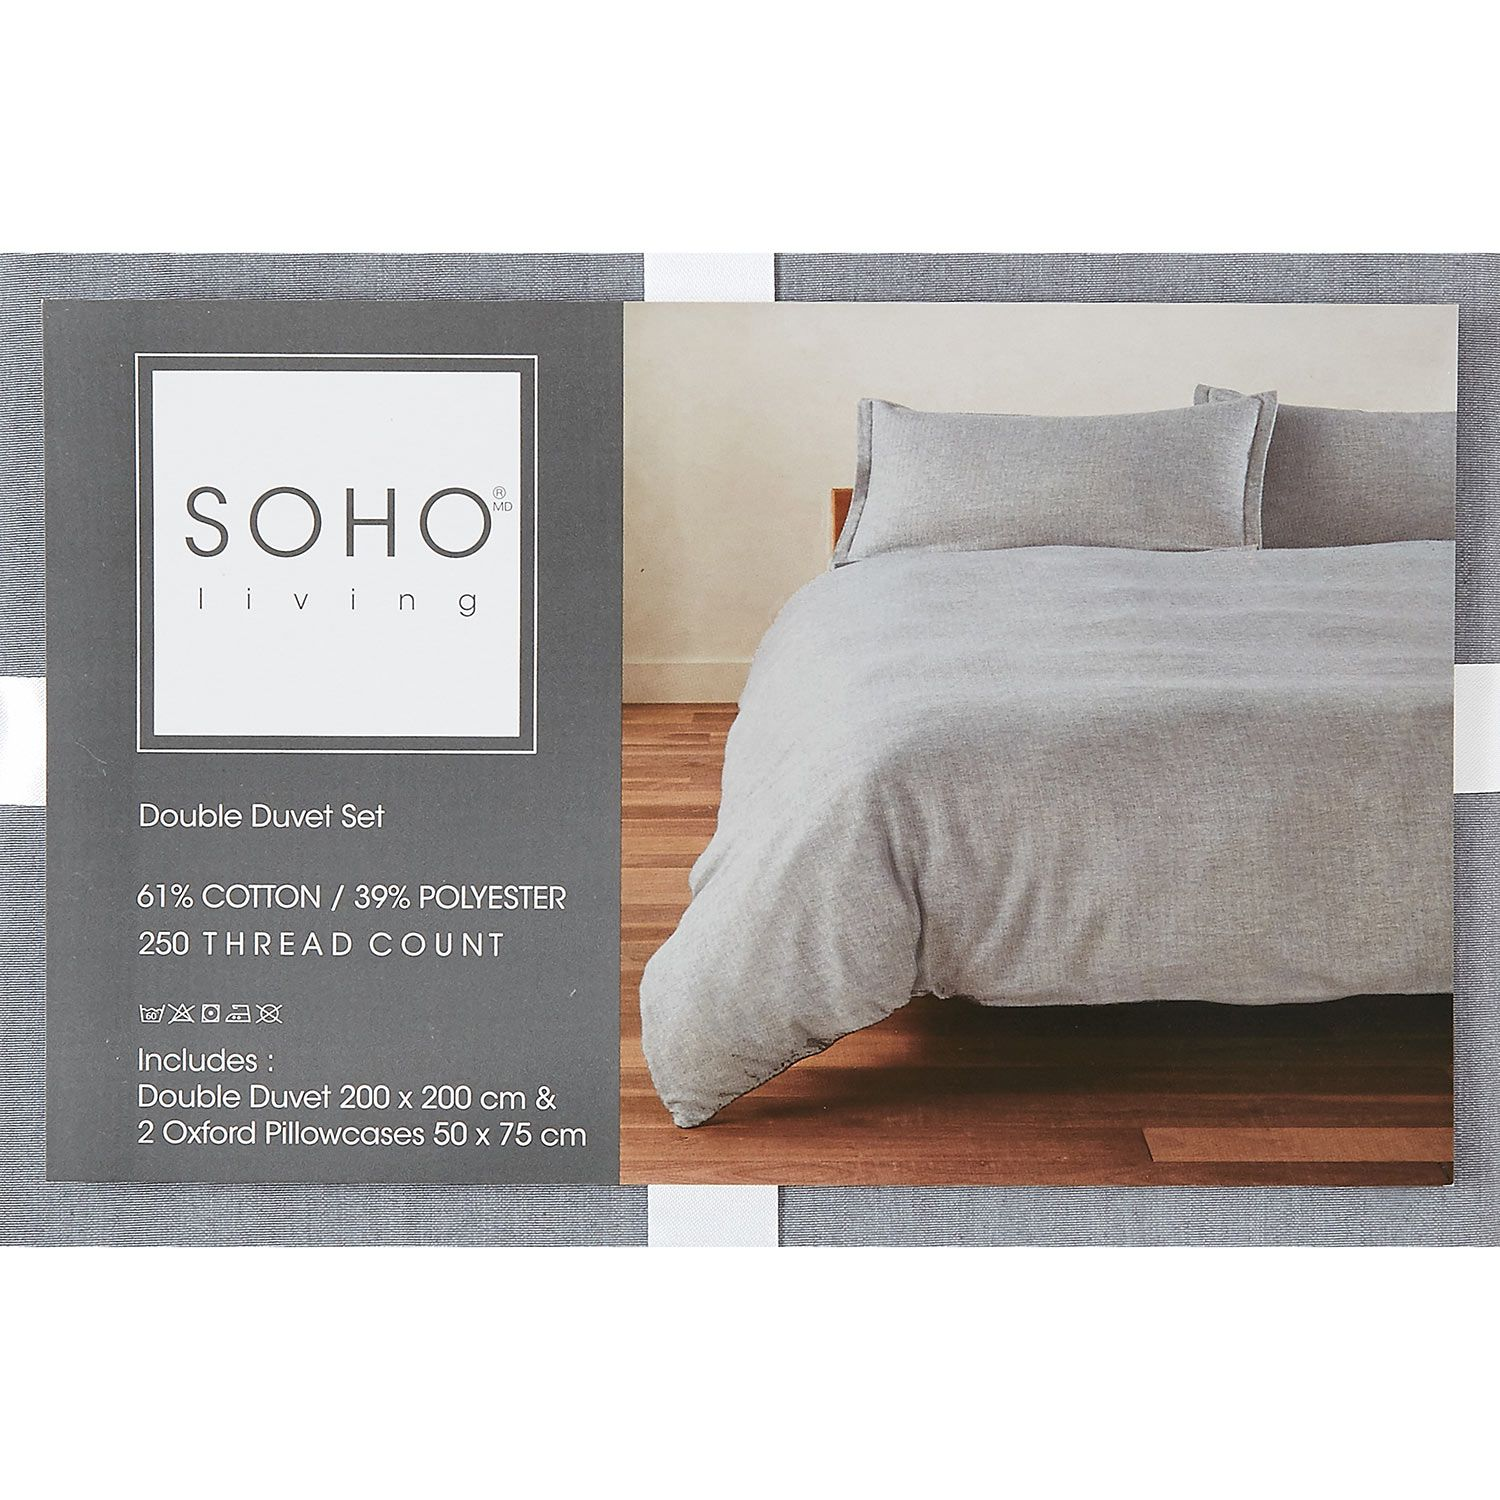 Soho Living Double Grey Duvet Set 250tc Tk Maxx Grey Duvet